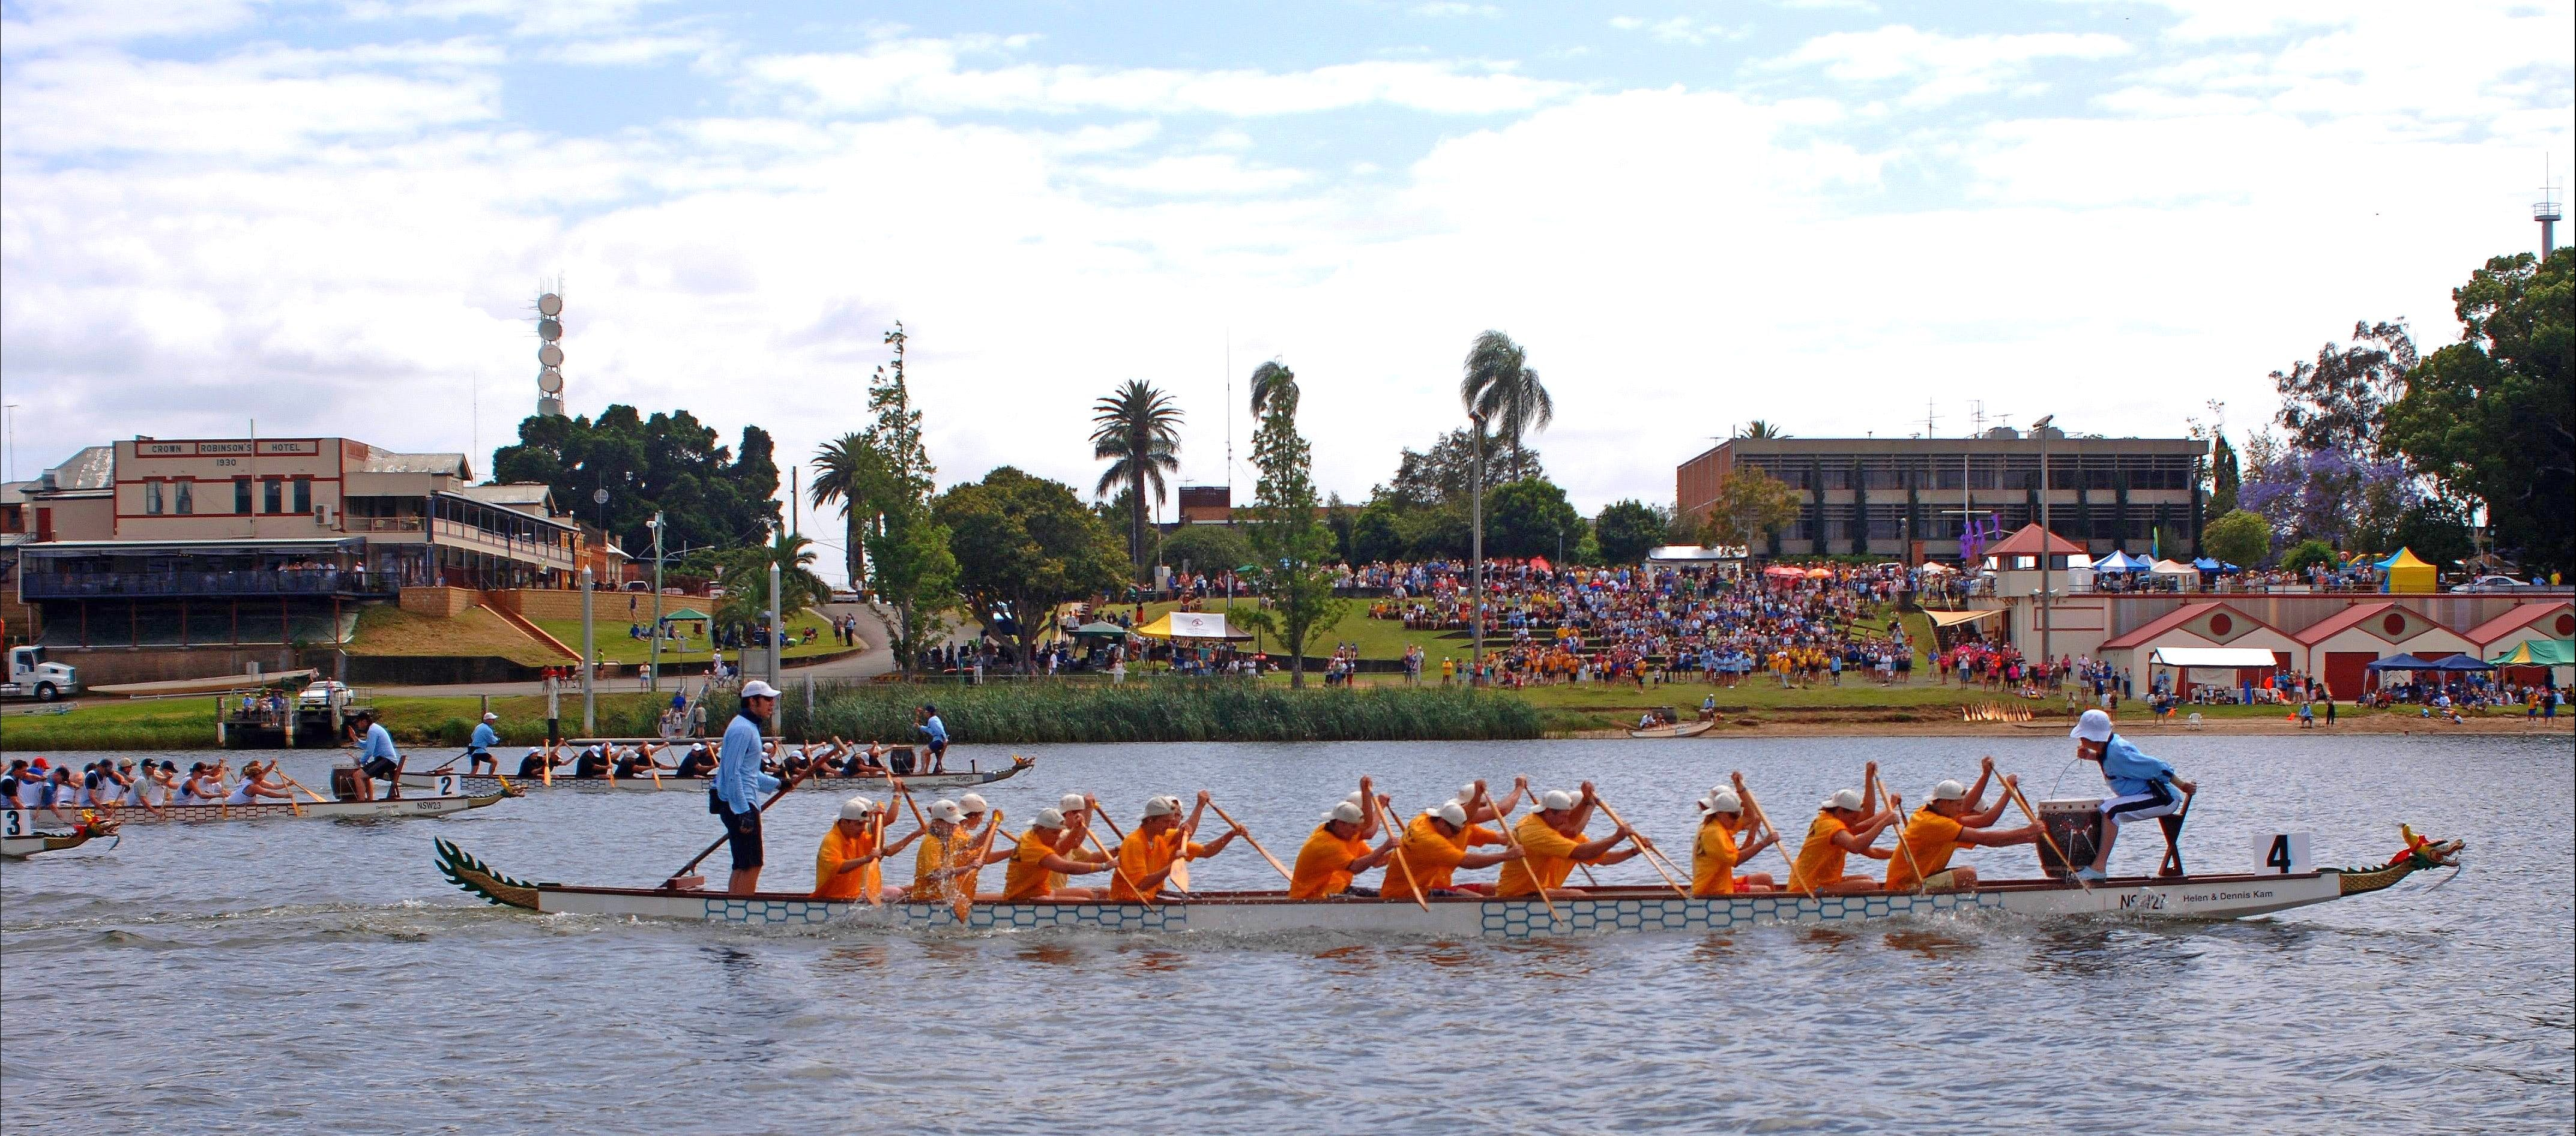 Jacaranda Dragon Boat Races - Accommodation in Brisbane